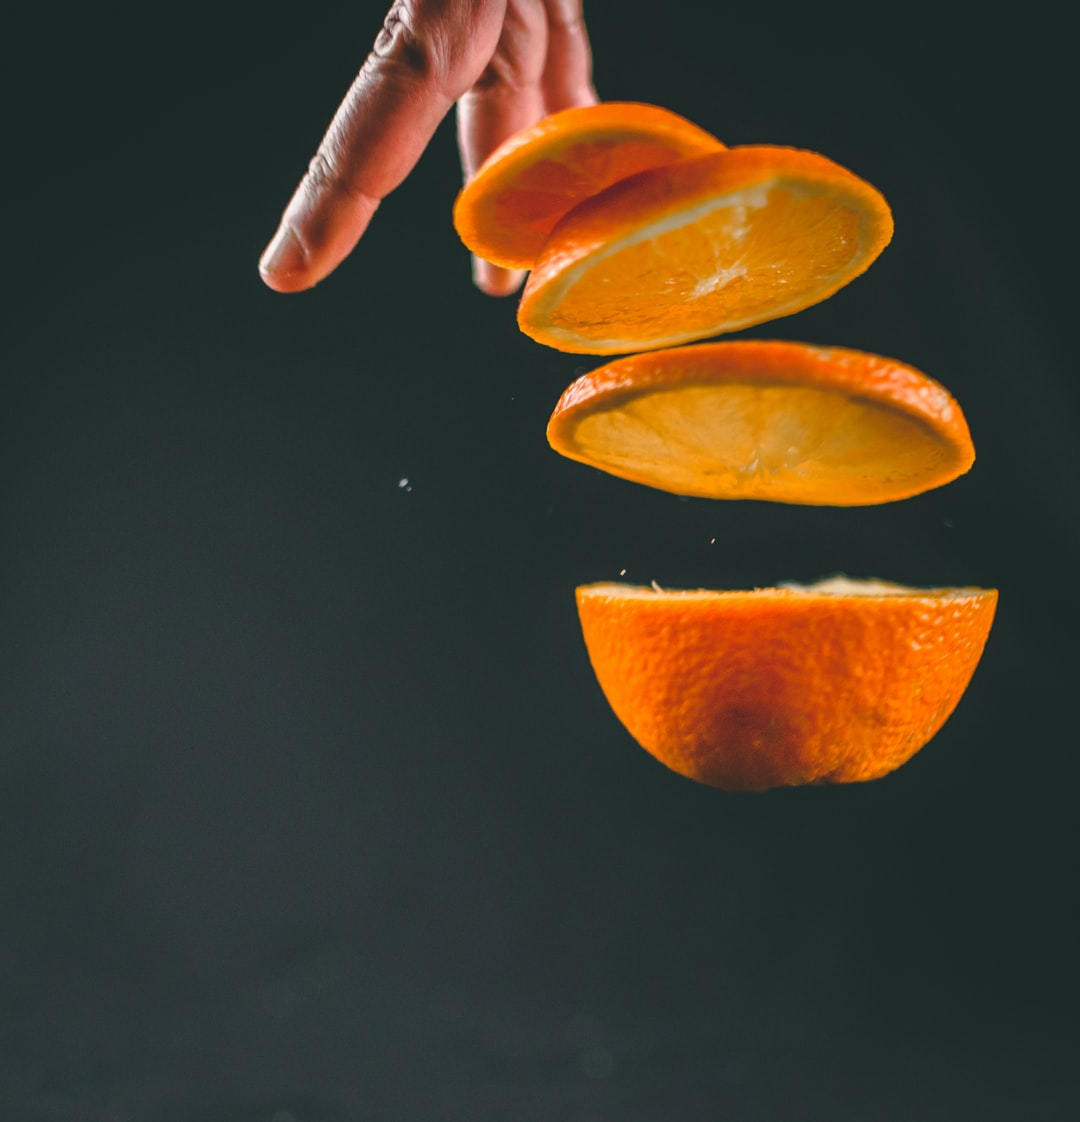 Levitating slices of orange on black background